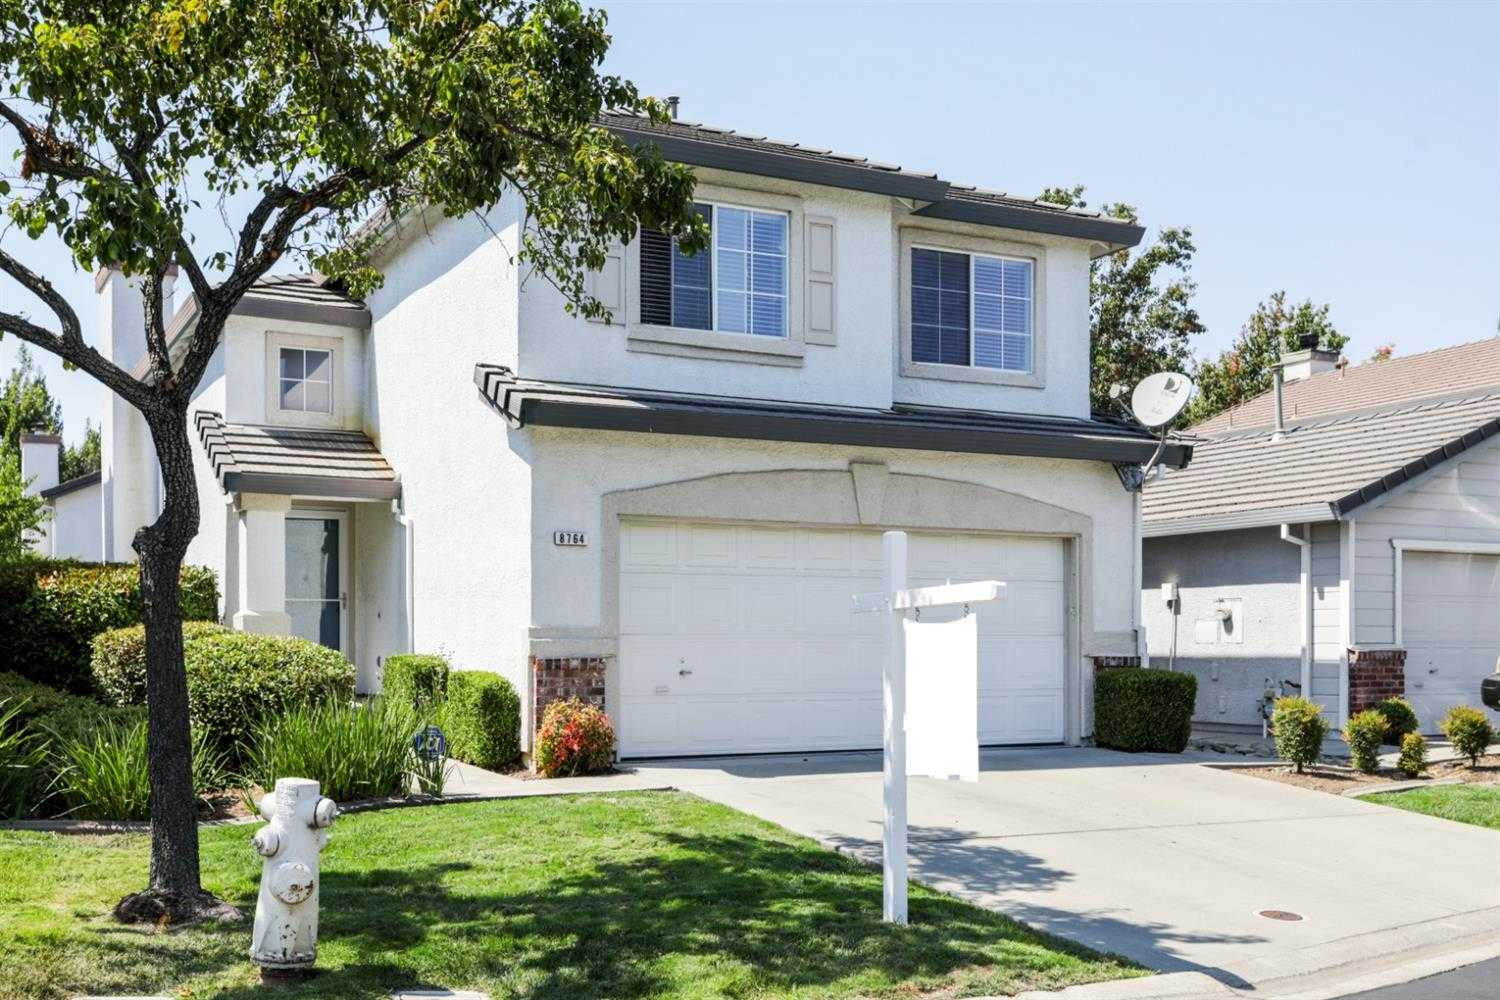 $342,000 - 3Br/3Ba -  for Sale in The Aspens, Elk Grove